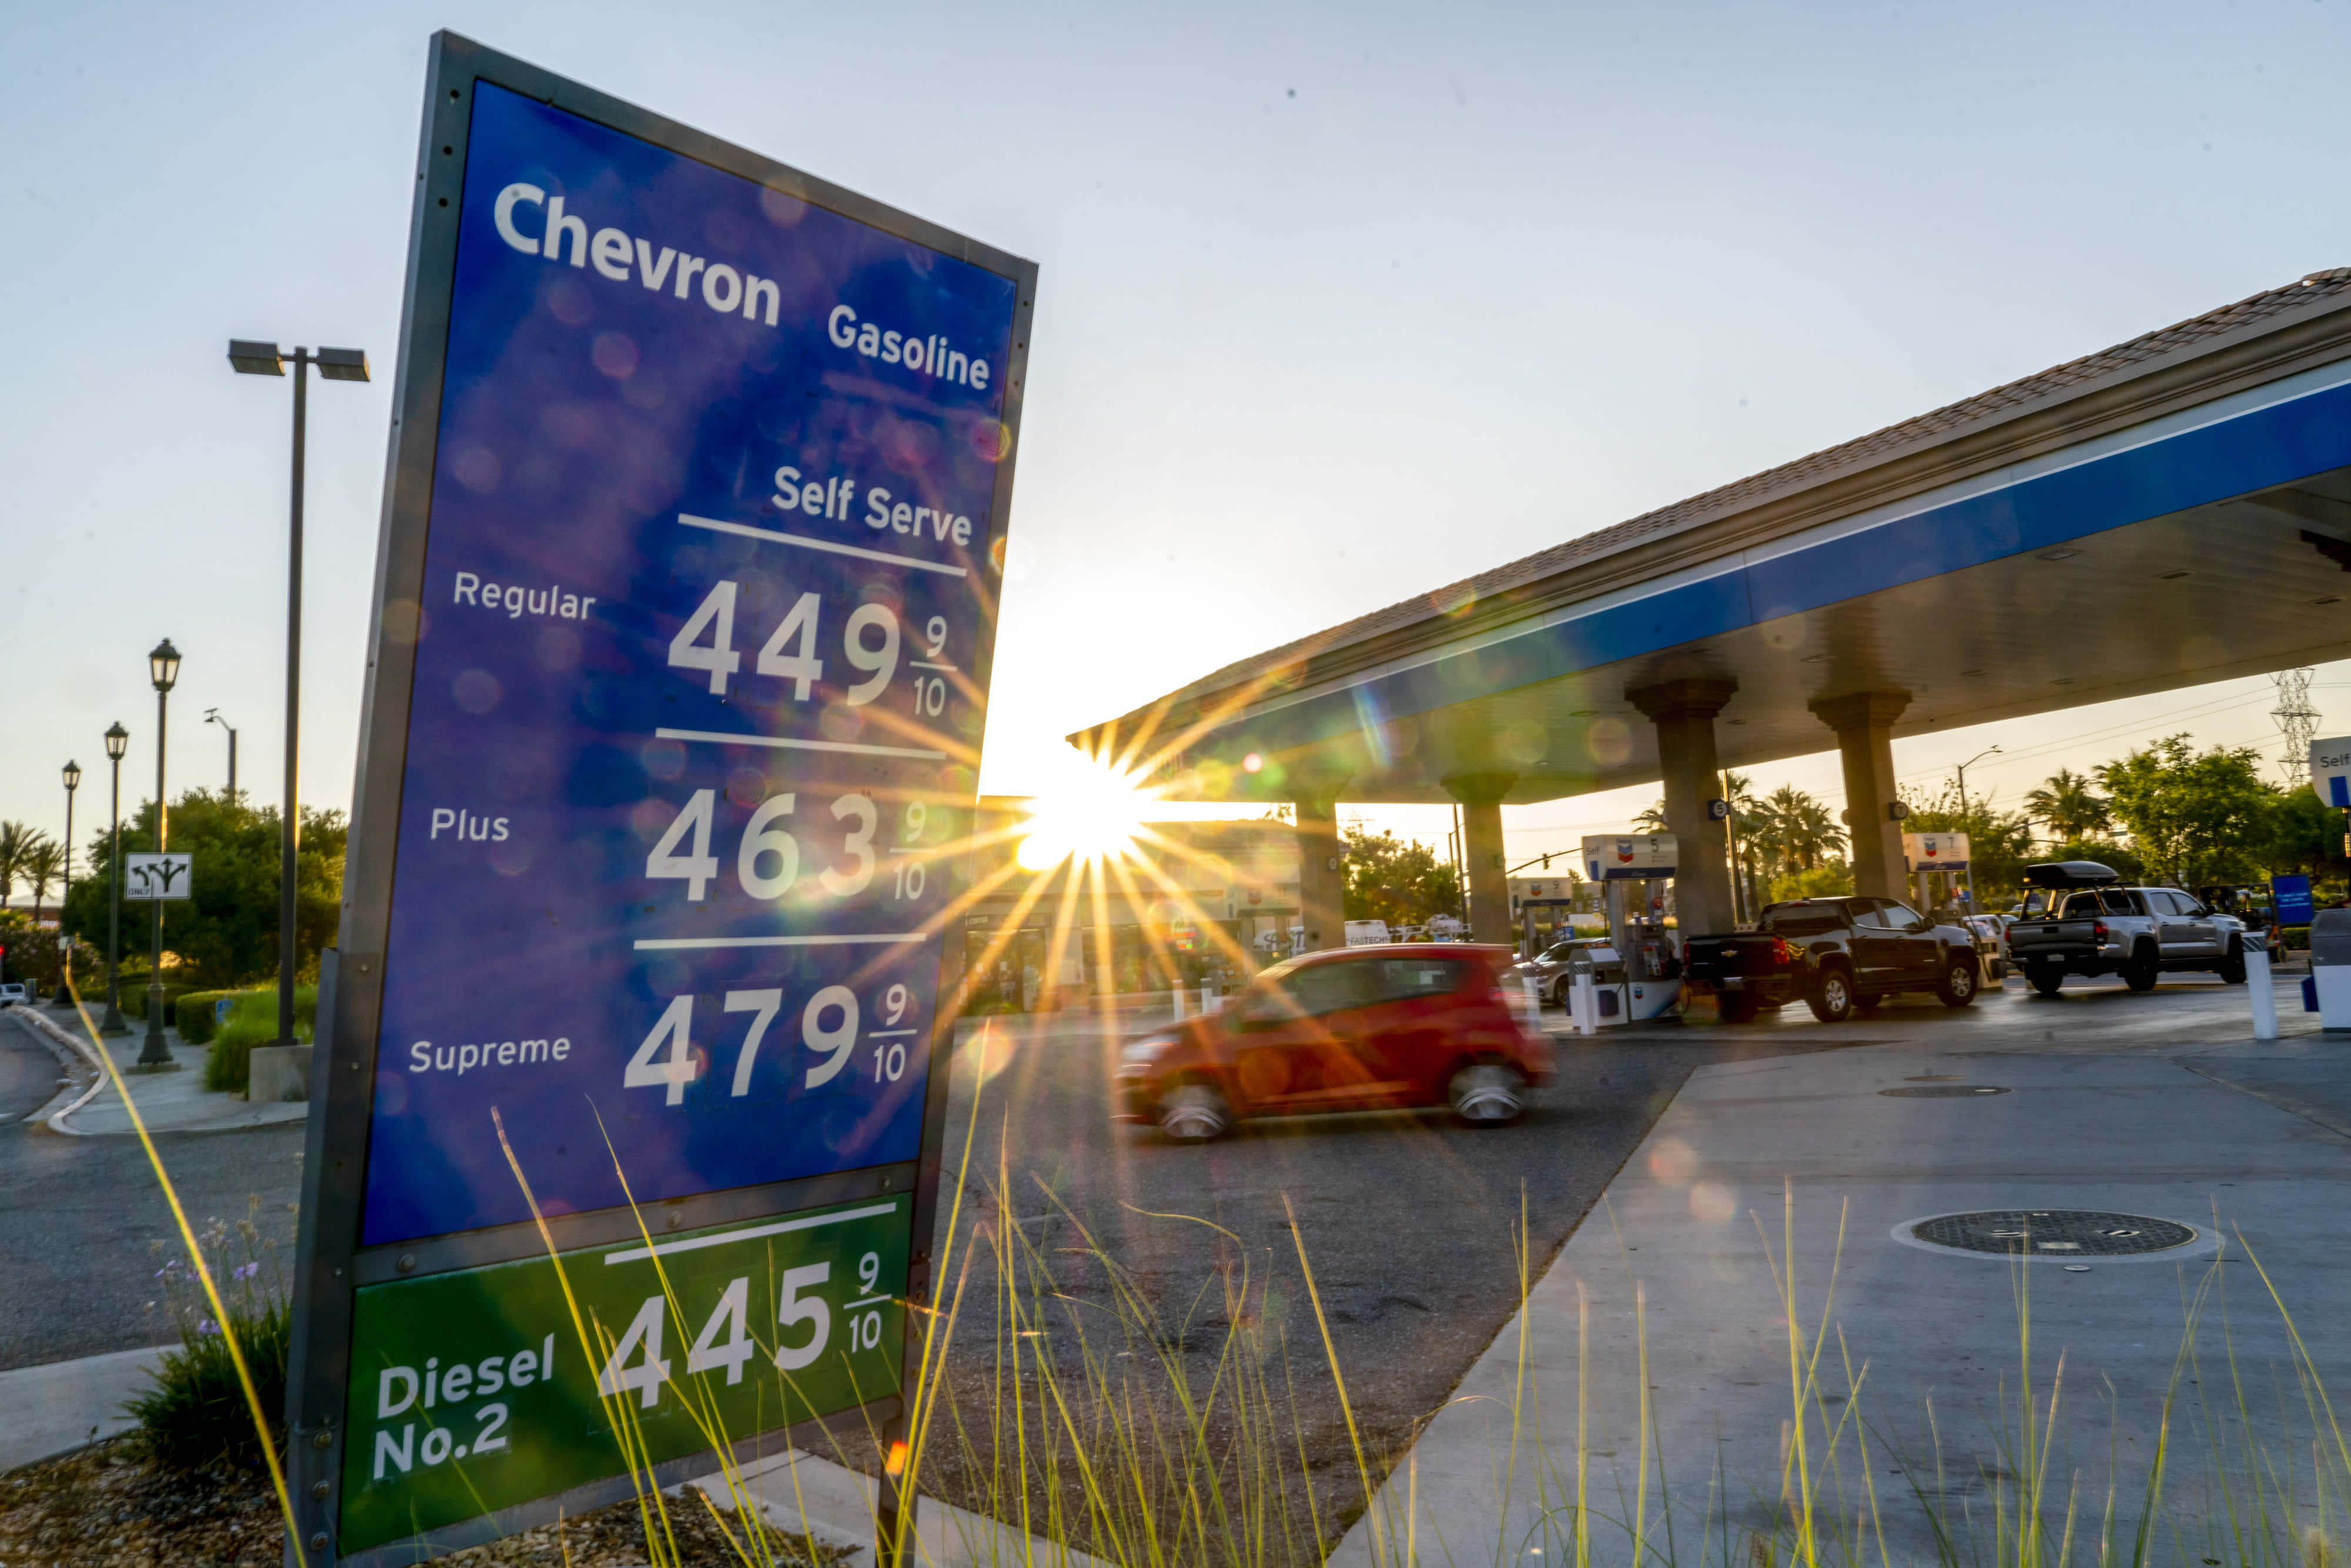 106908506-1625780328164-gettyimages-1233878030-US_GAS_PRICES.jpeg?v=1631275327